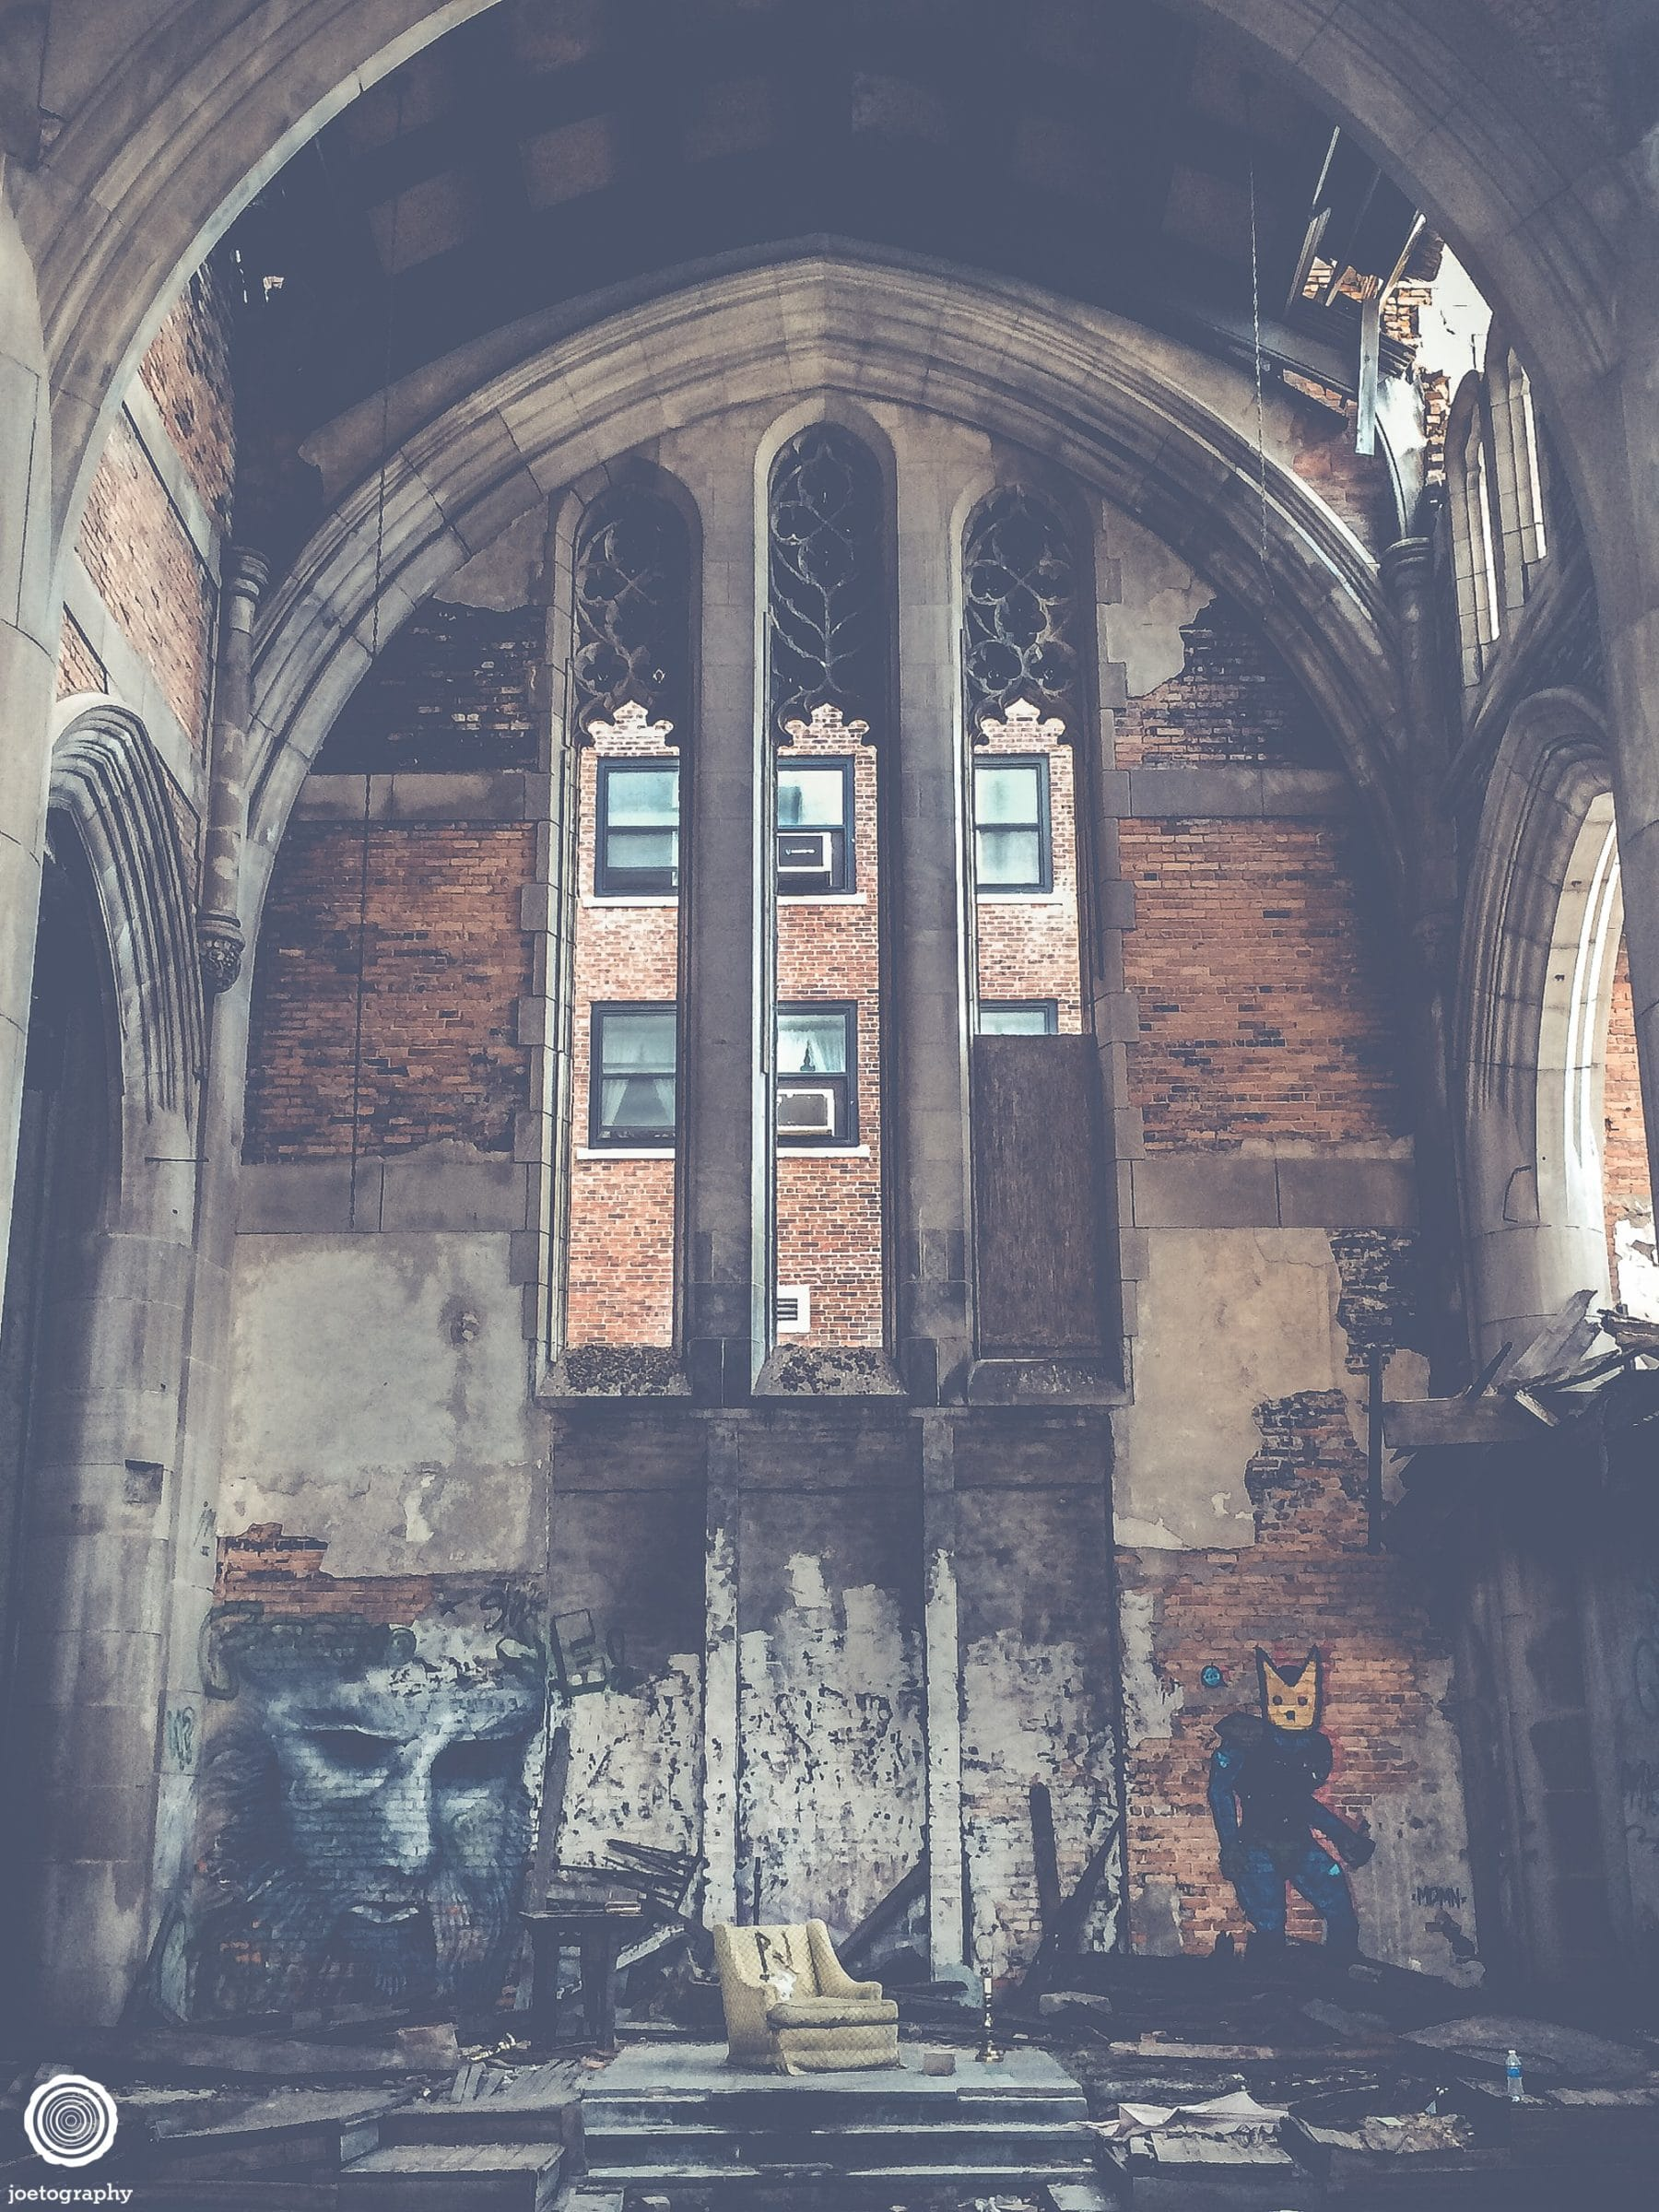 abandoned-city-methodist-church-gary-indiana-9